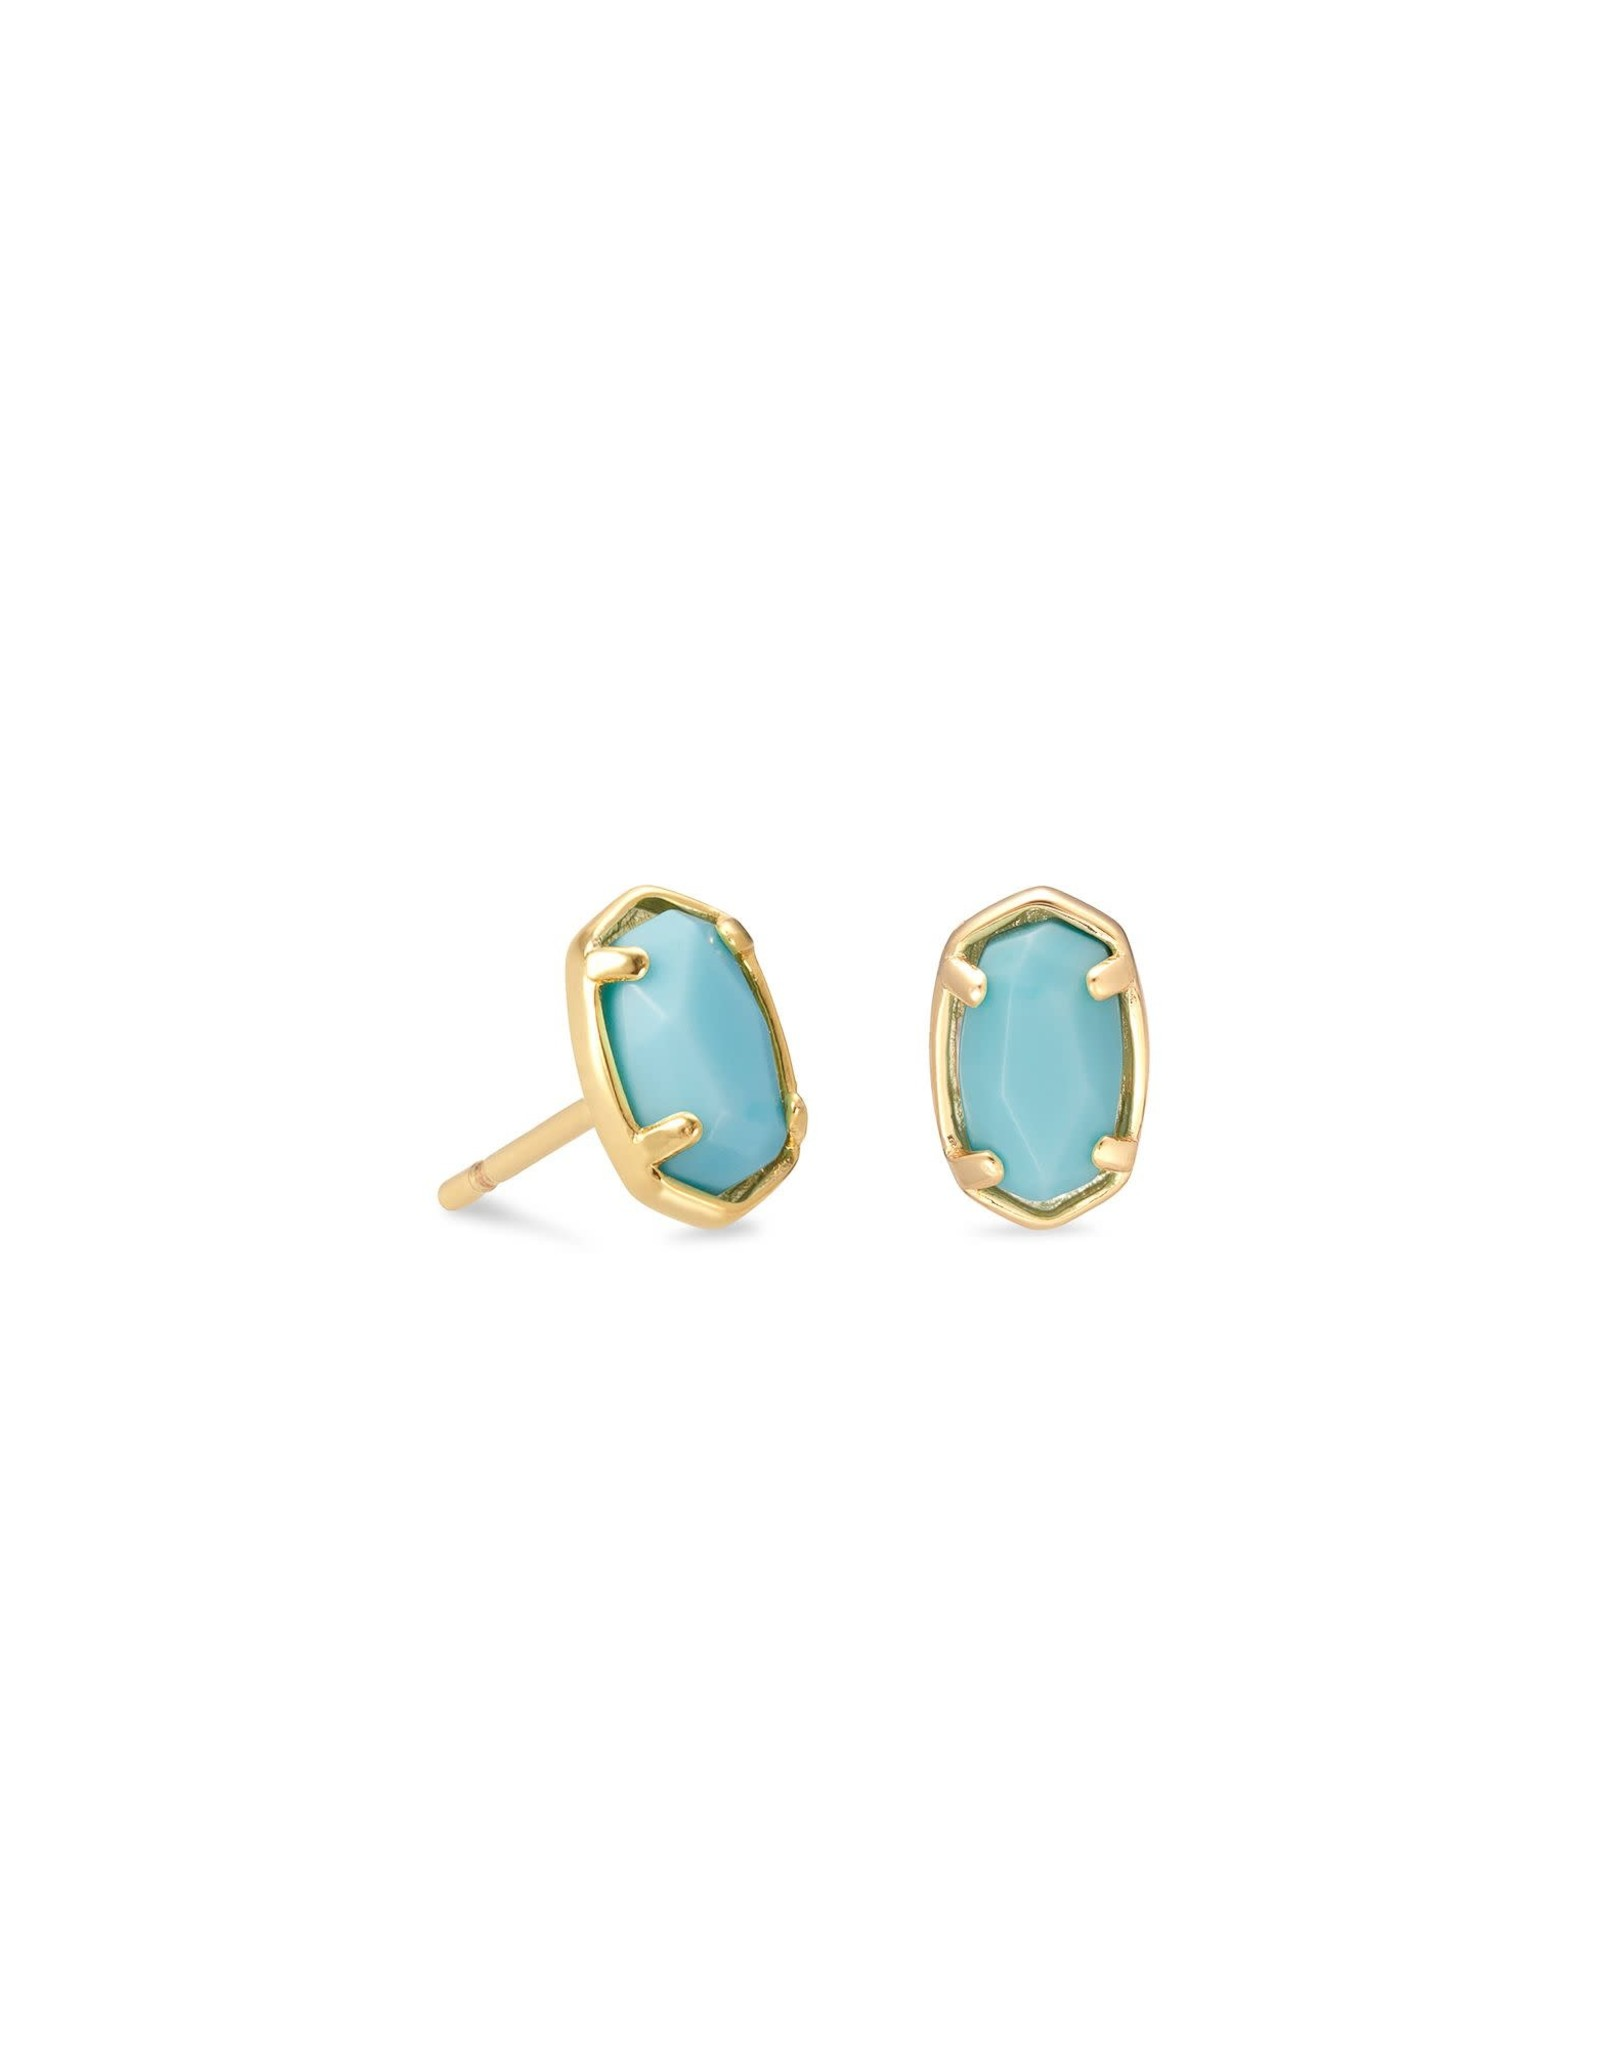 Kendra Scott Emilie Stud Earring - Light Blue Magnesite/Gold